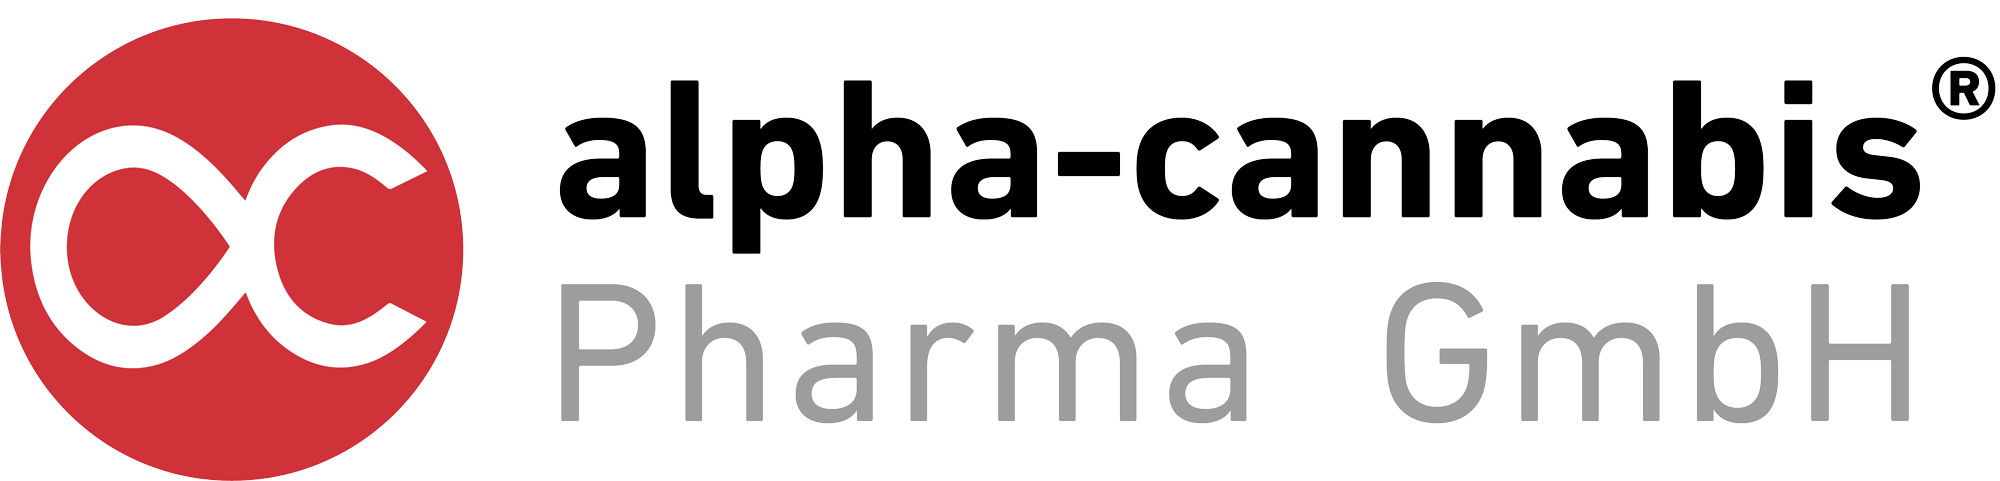 Alpha cannabis pharma germany causes and effects of steroids